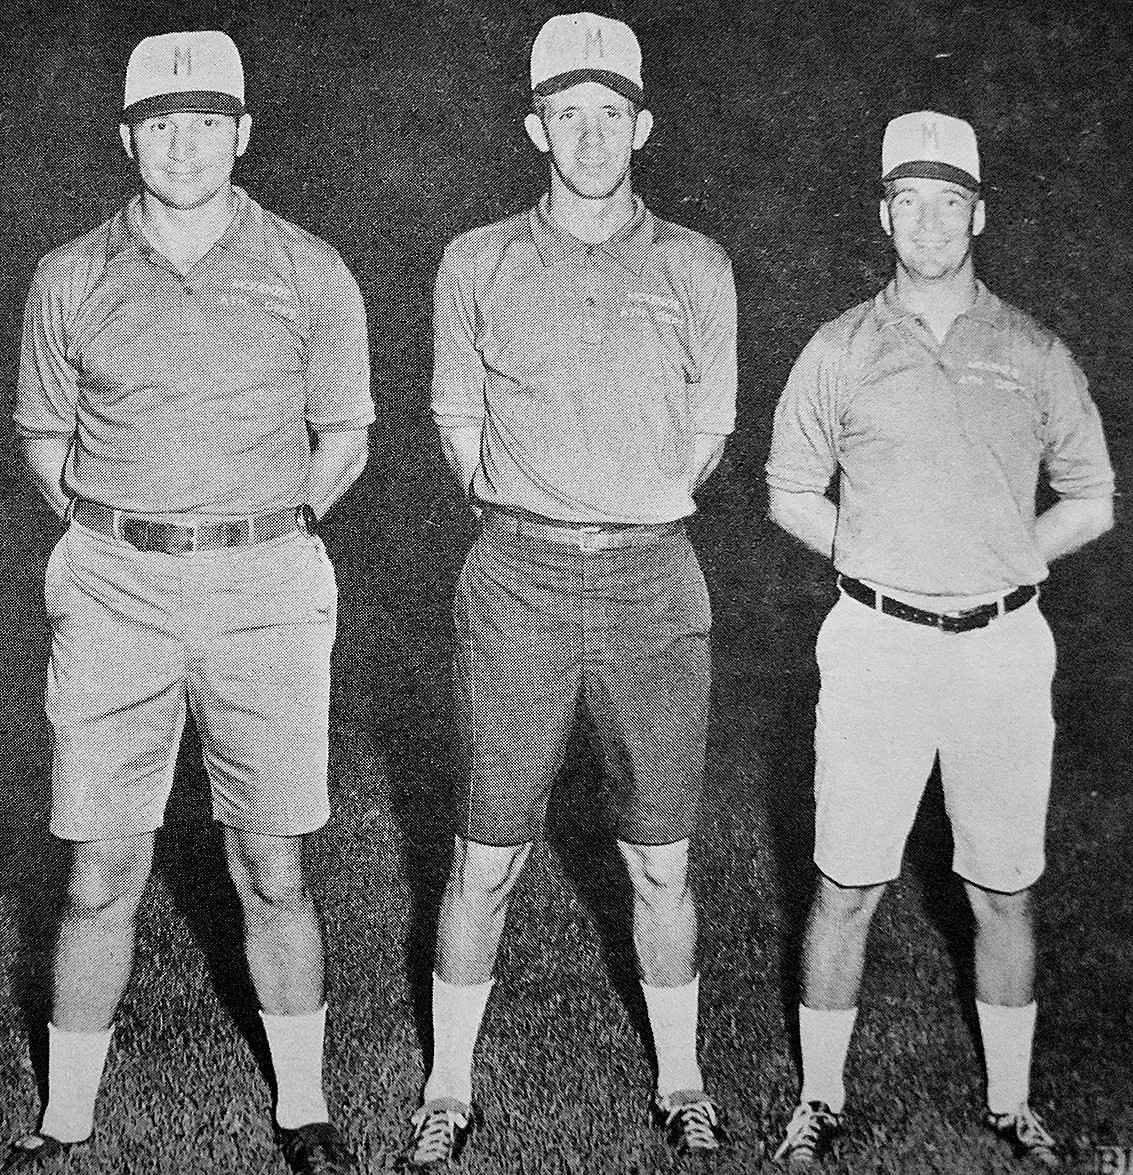 50 YEARS AGO — McKenzie High School Football Coaches (L to R): Assistant Coach Dewey Chism, Head Coach Jerry Escue and Assistant Coach Leroy Seagraves.